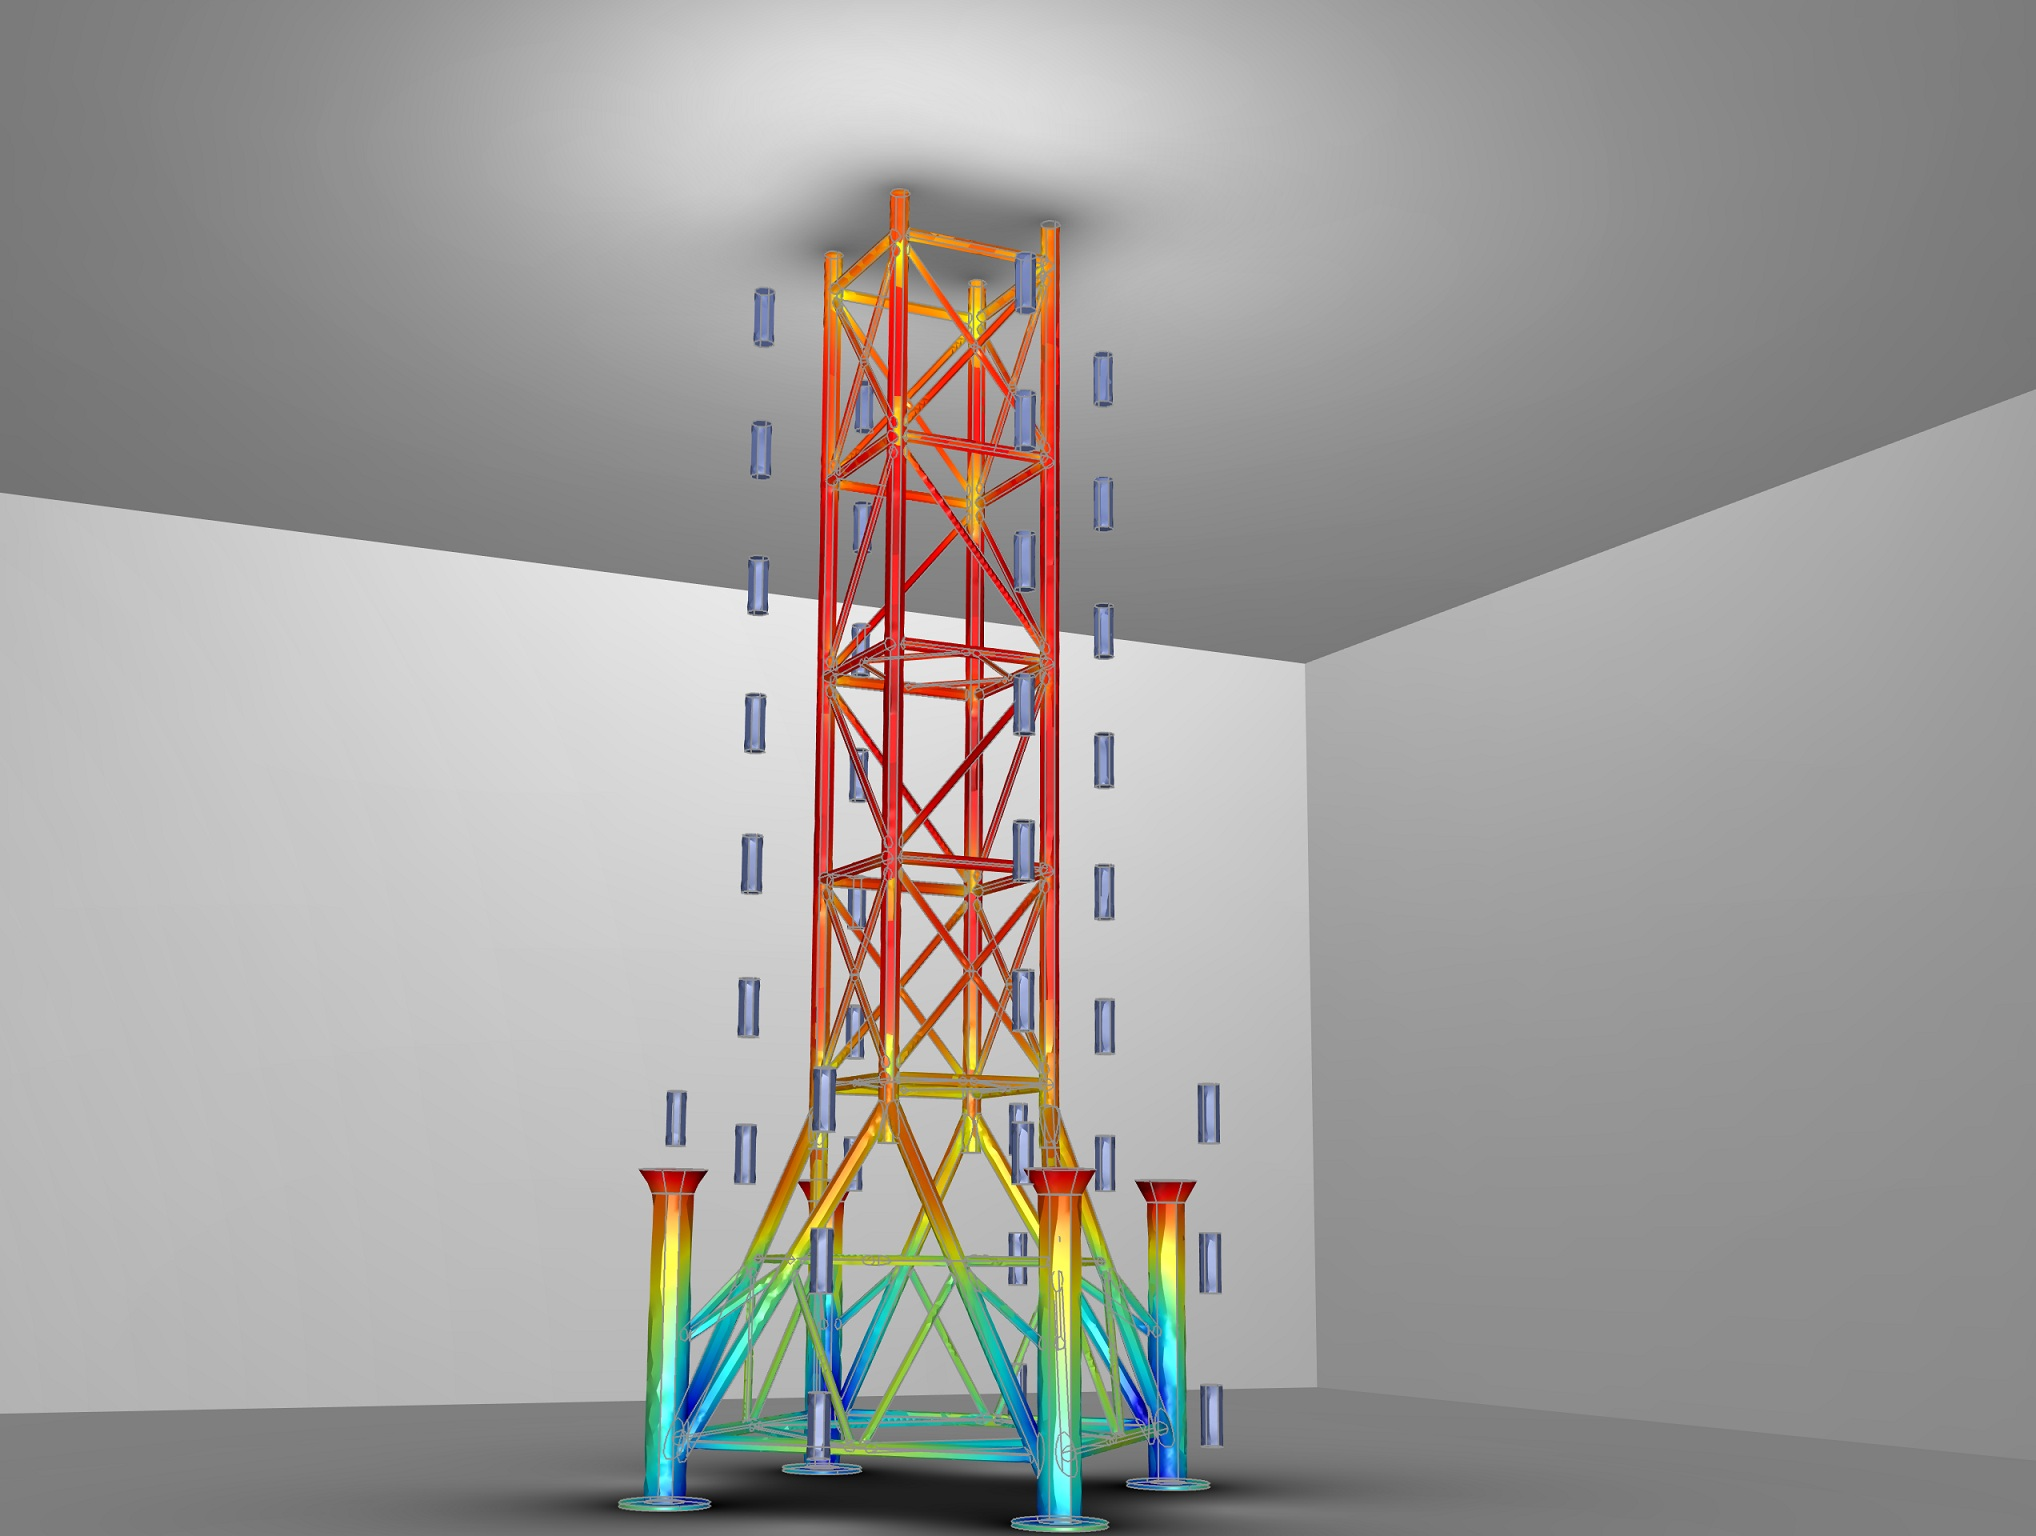 Model of an Oil Rig in COMSOL Multiphysics